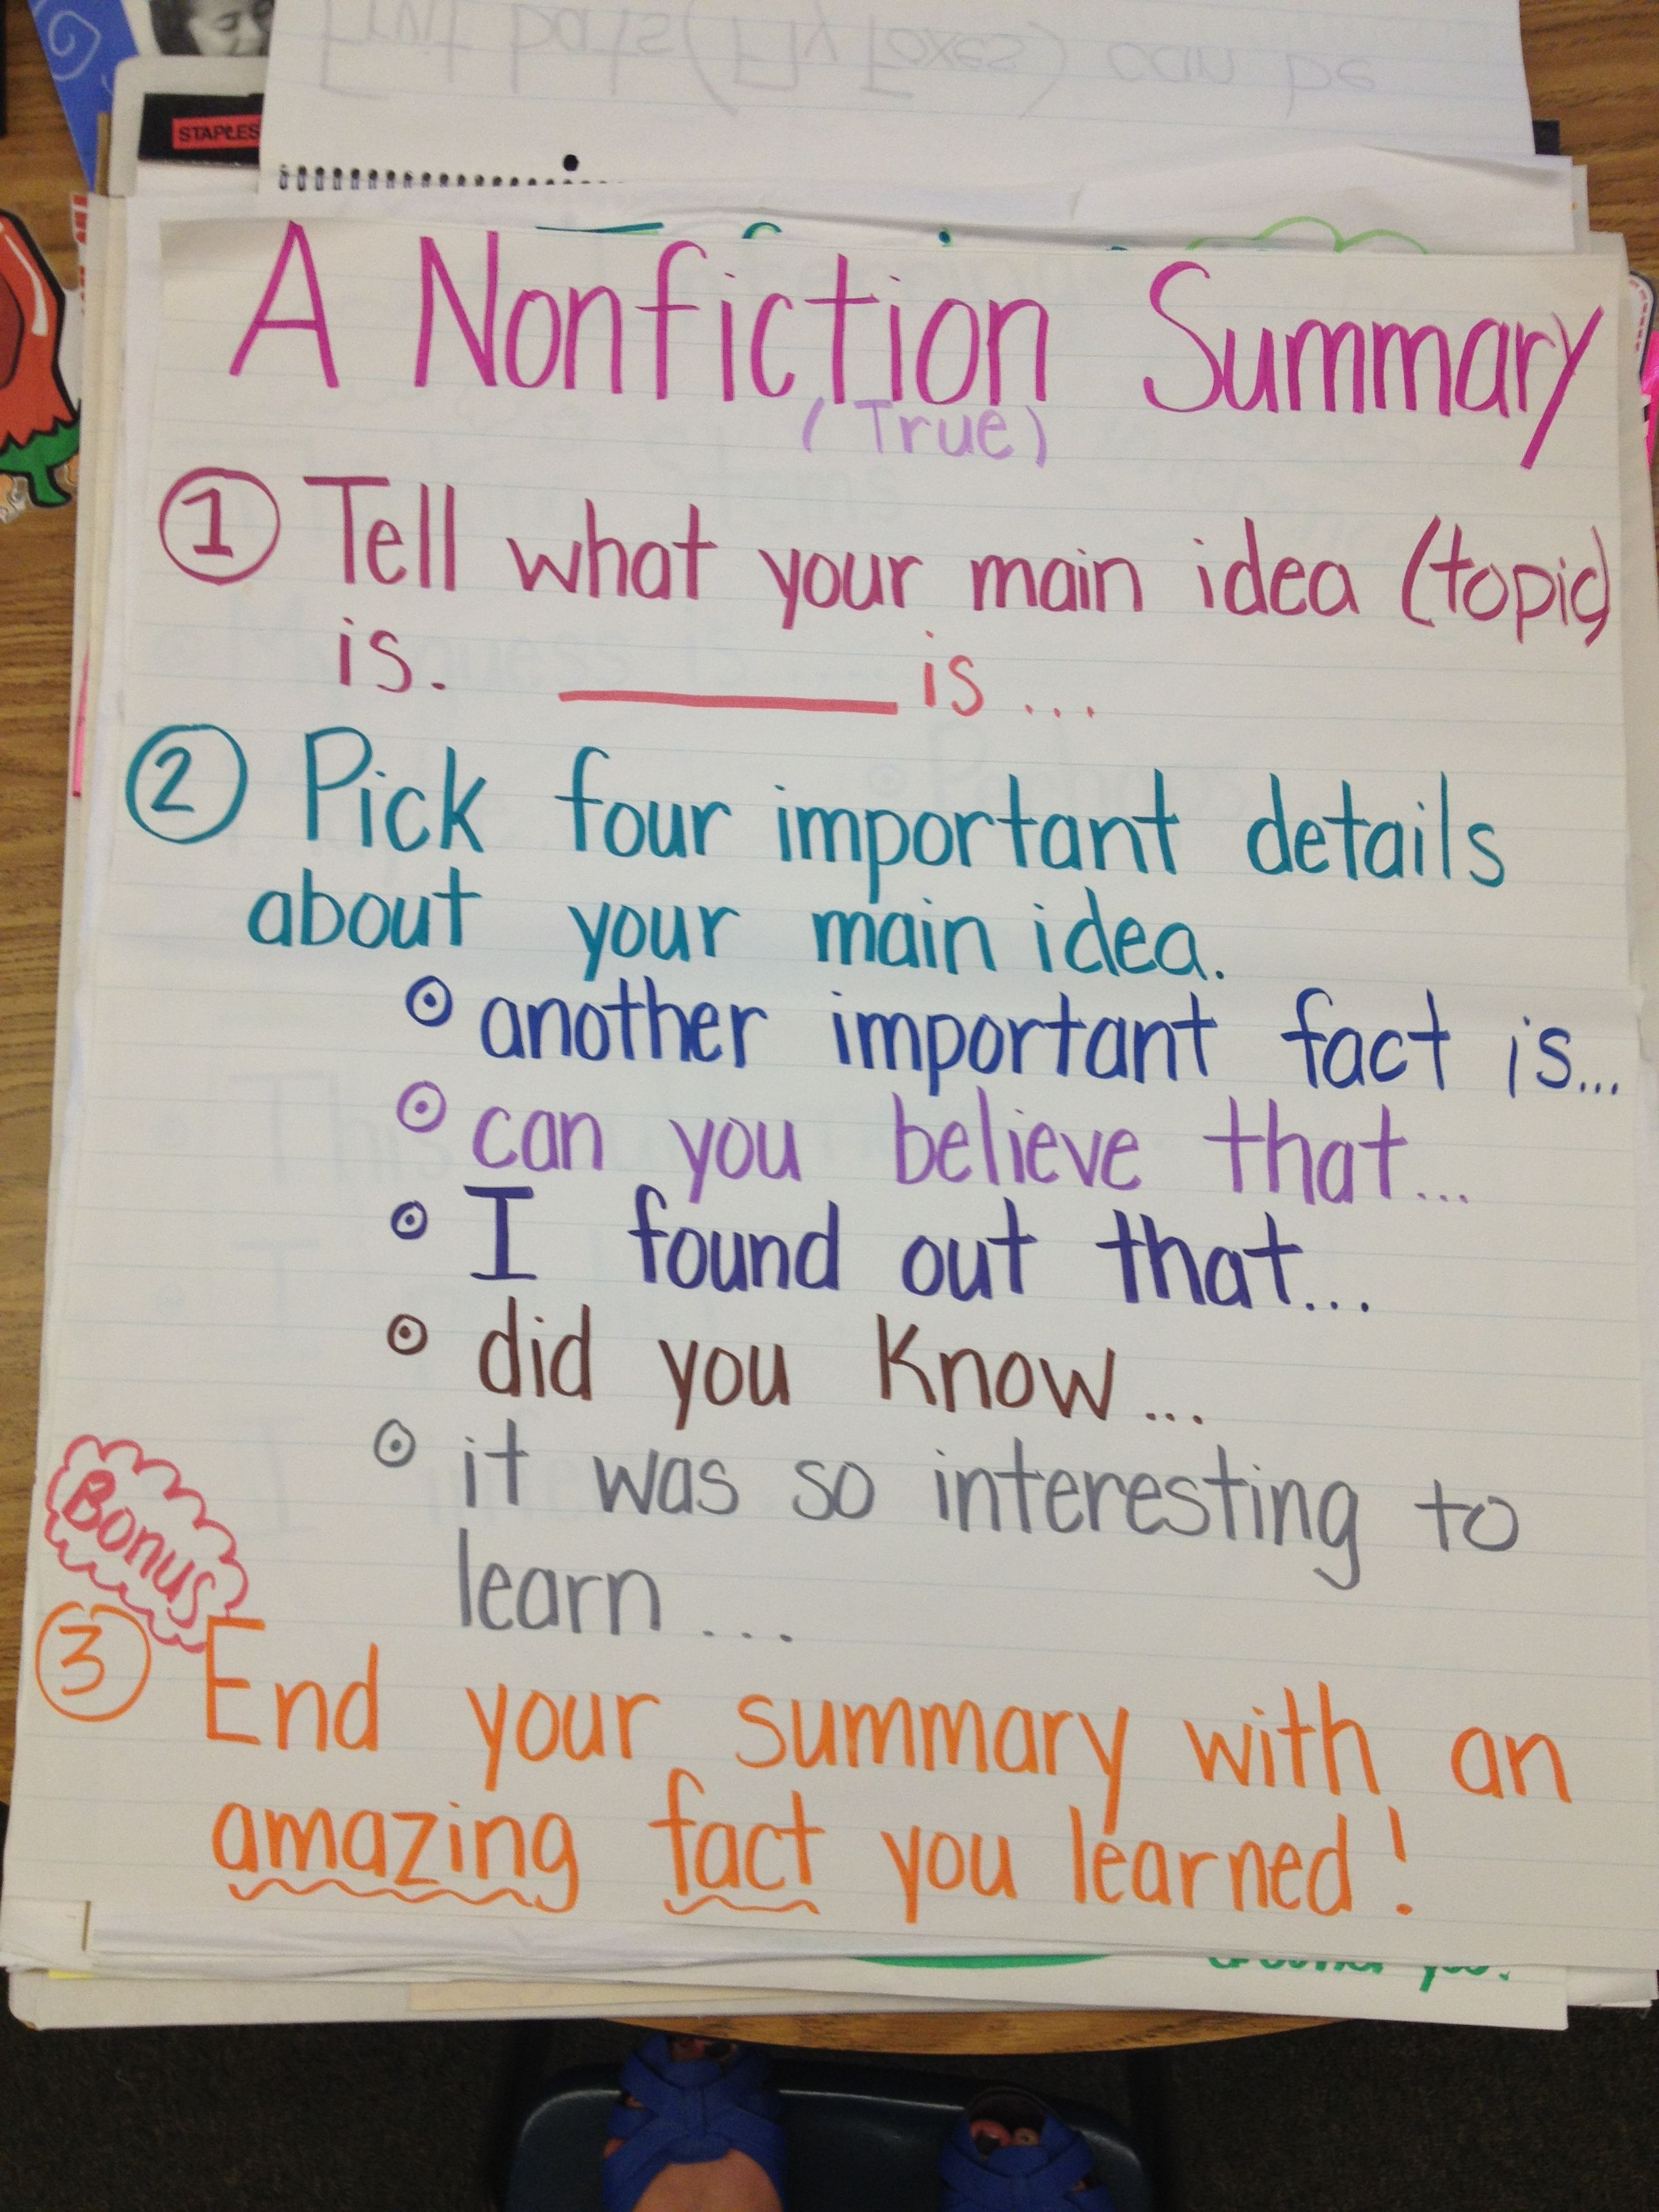 Nonfiction Summary Summaries Are Much More Difficult With